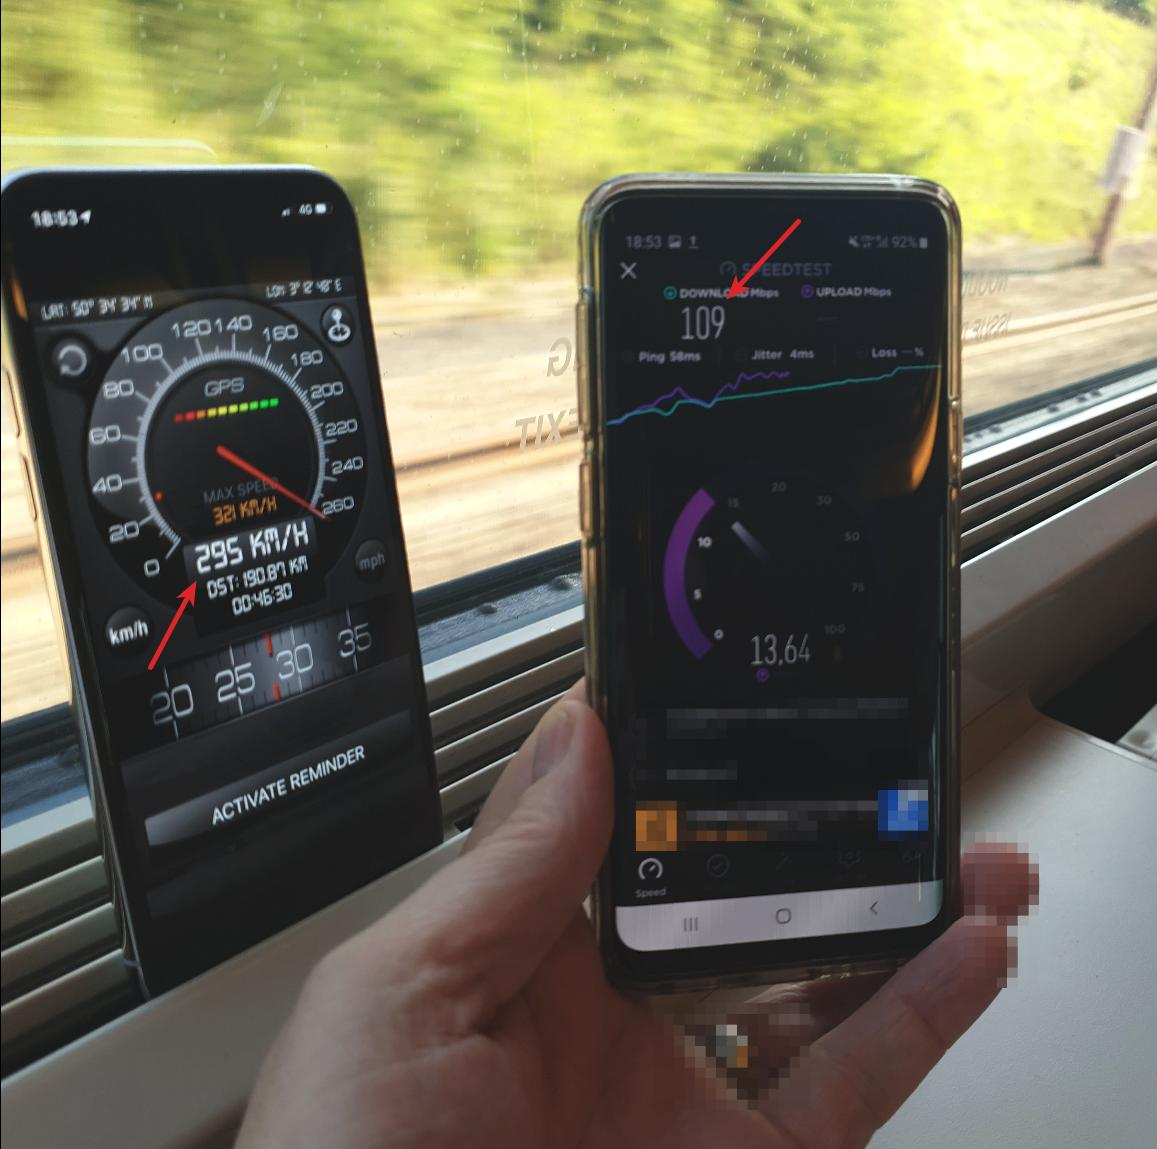 Train and data speed shown